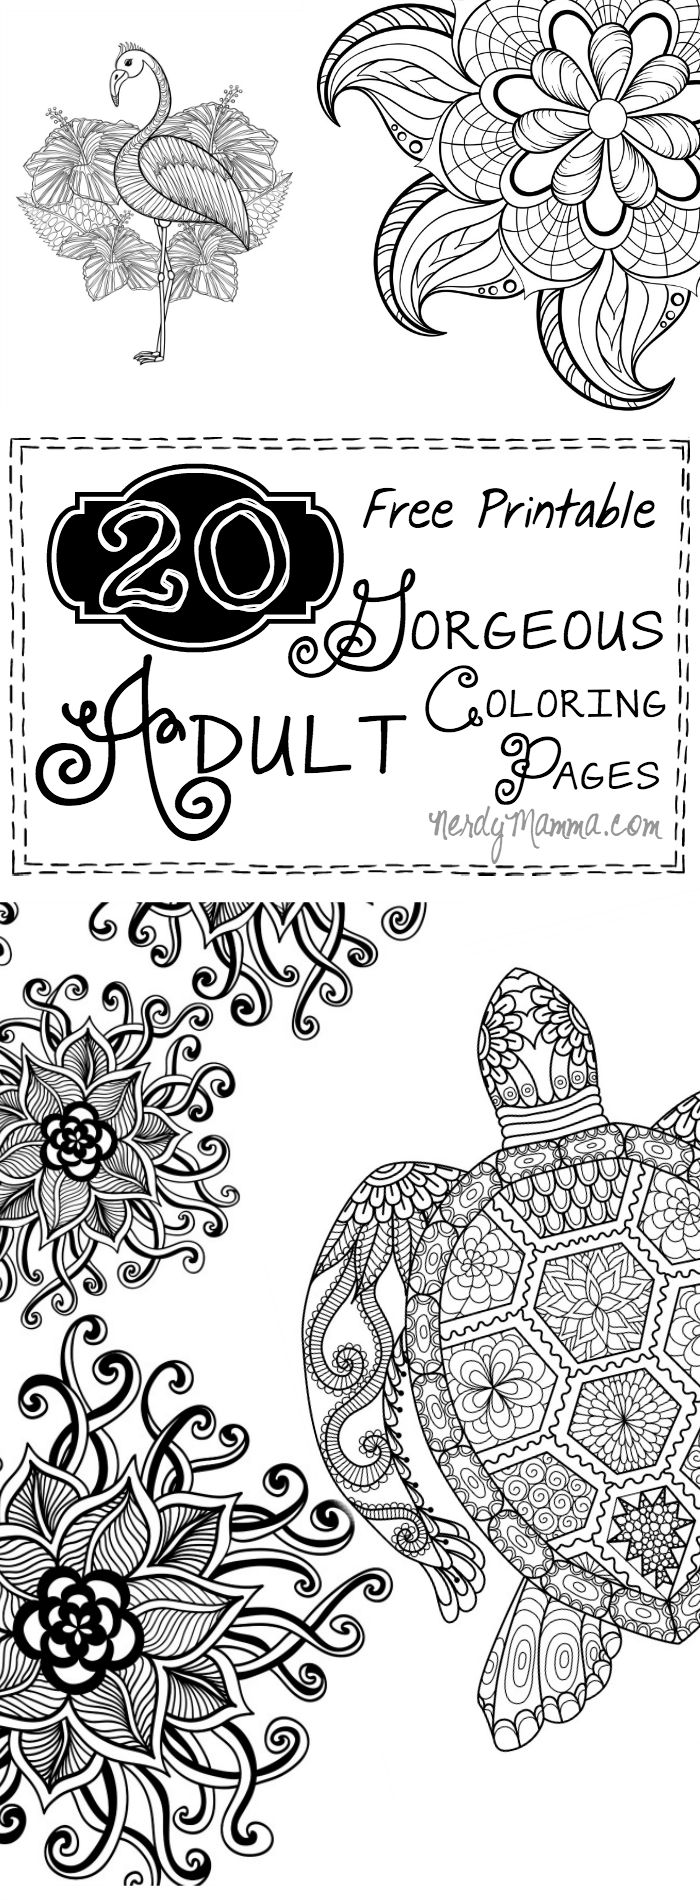 P 40 coloring pages - 20 Gorgeous Free Printable Adult Coloring Pages